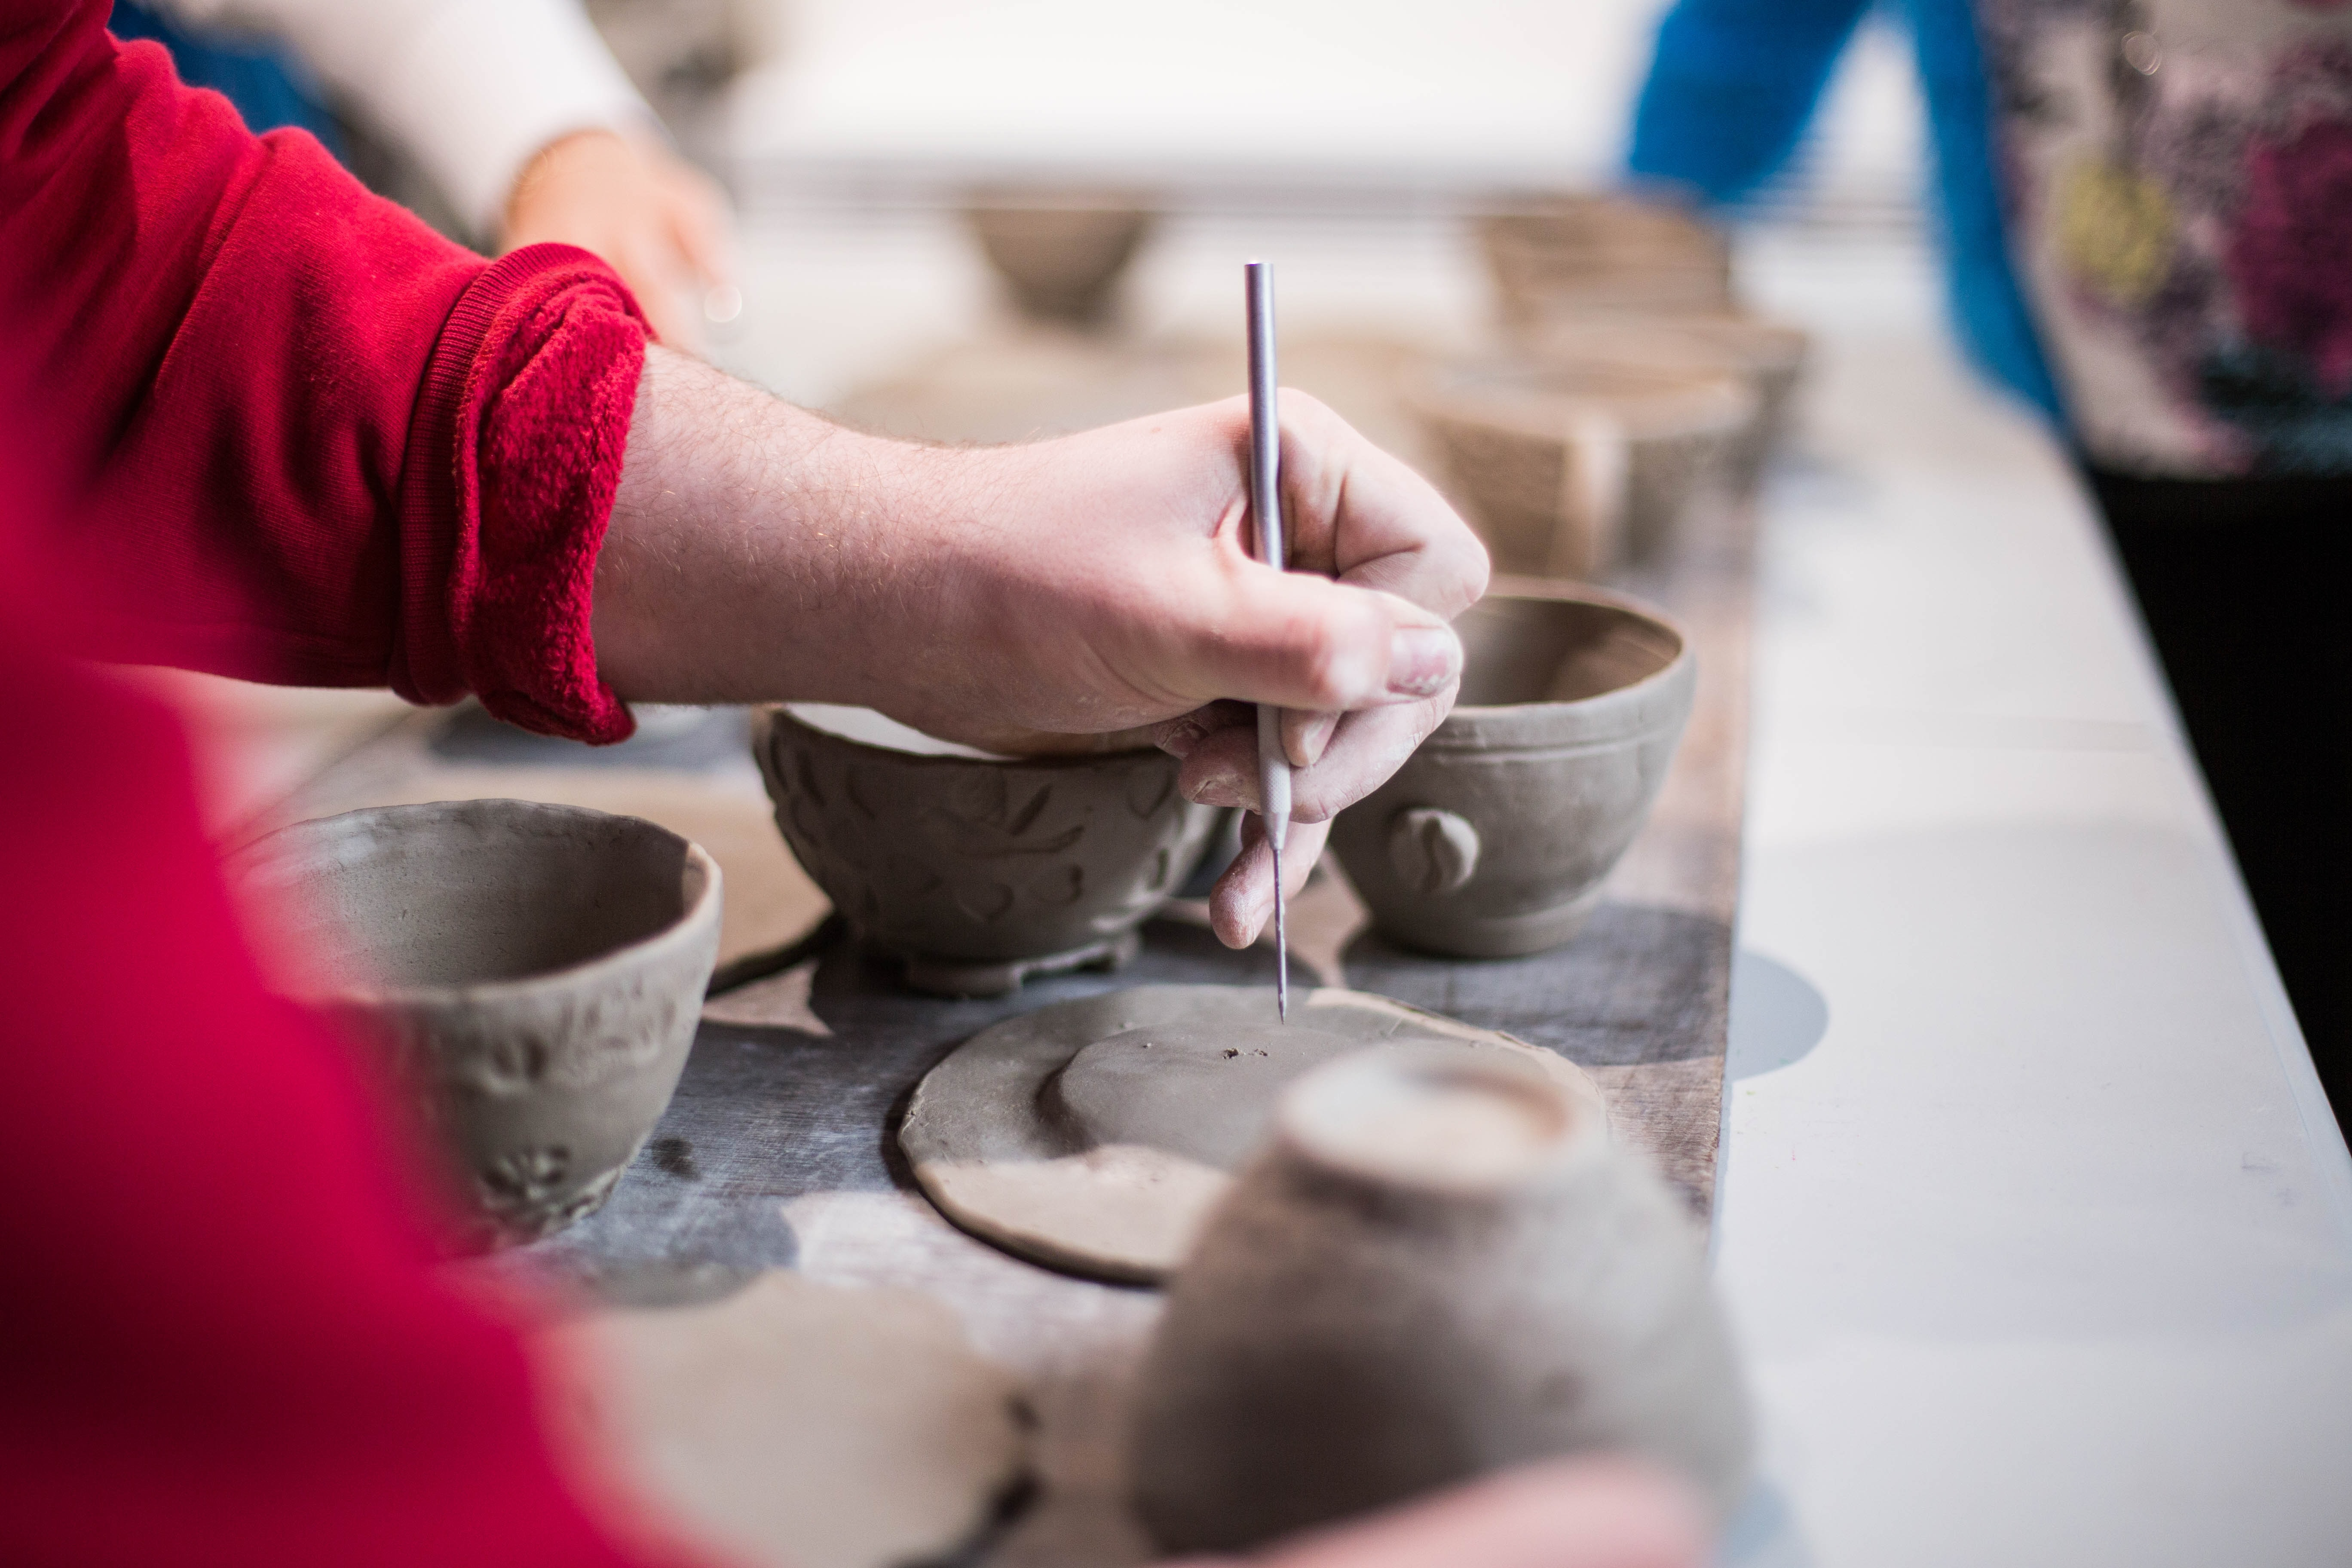 a person making indents into the clay